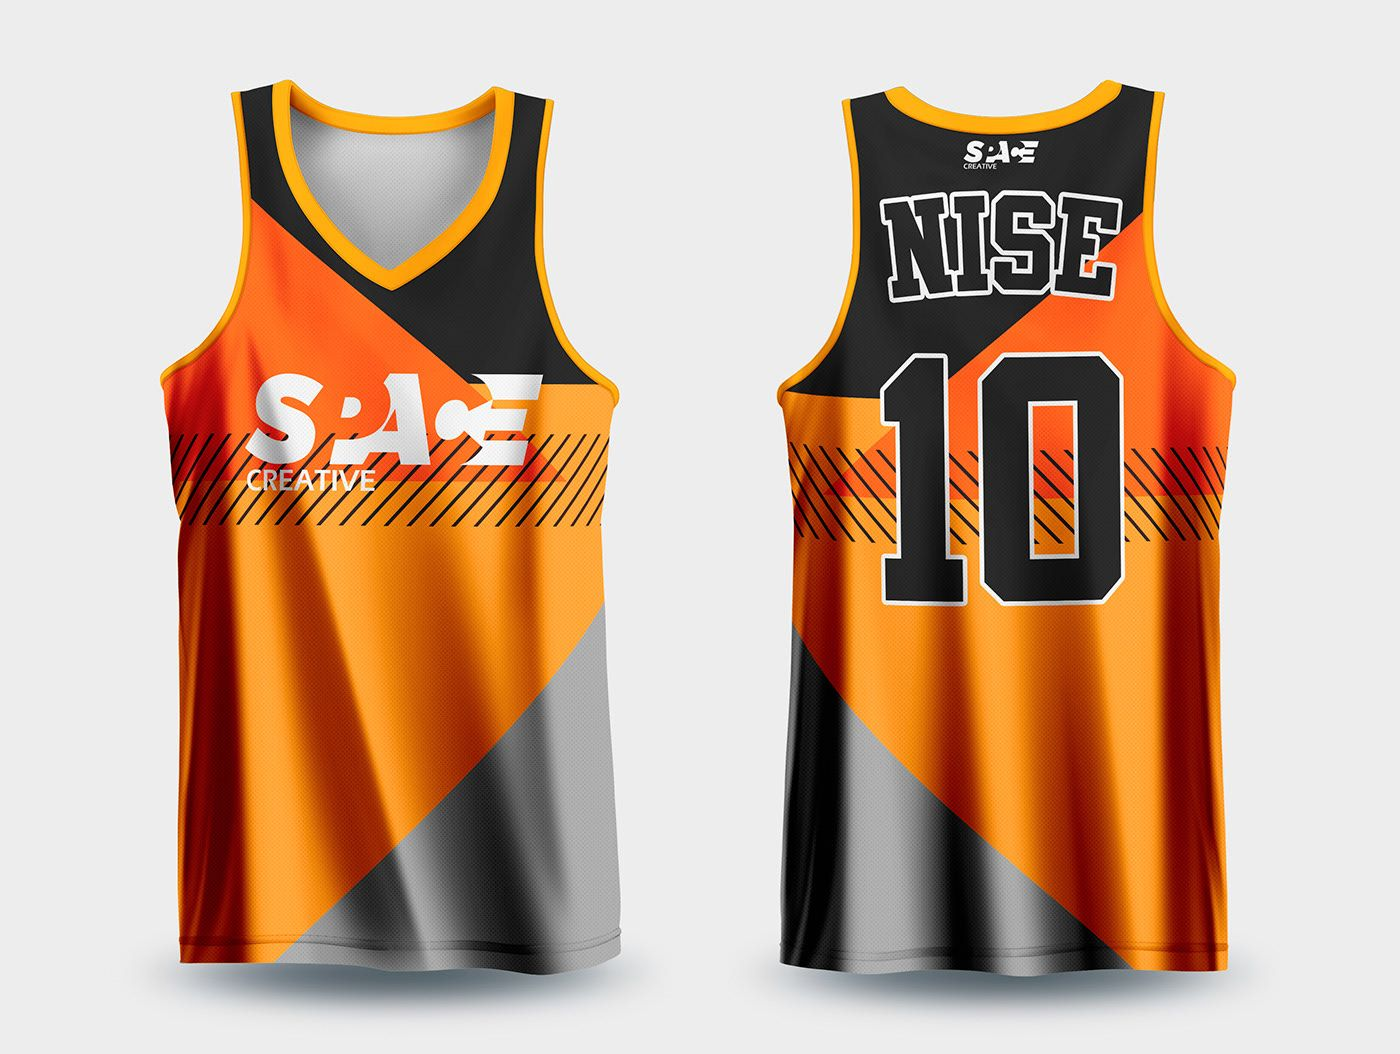 Soleras On Behance Sports Jersey Design Jersey Design Basketball Clothes